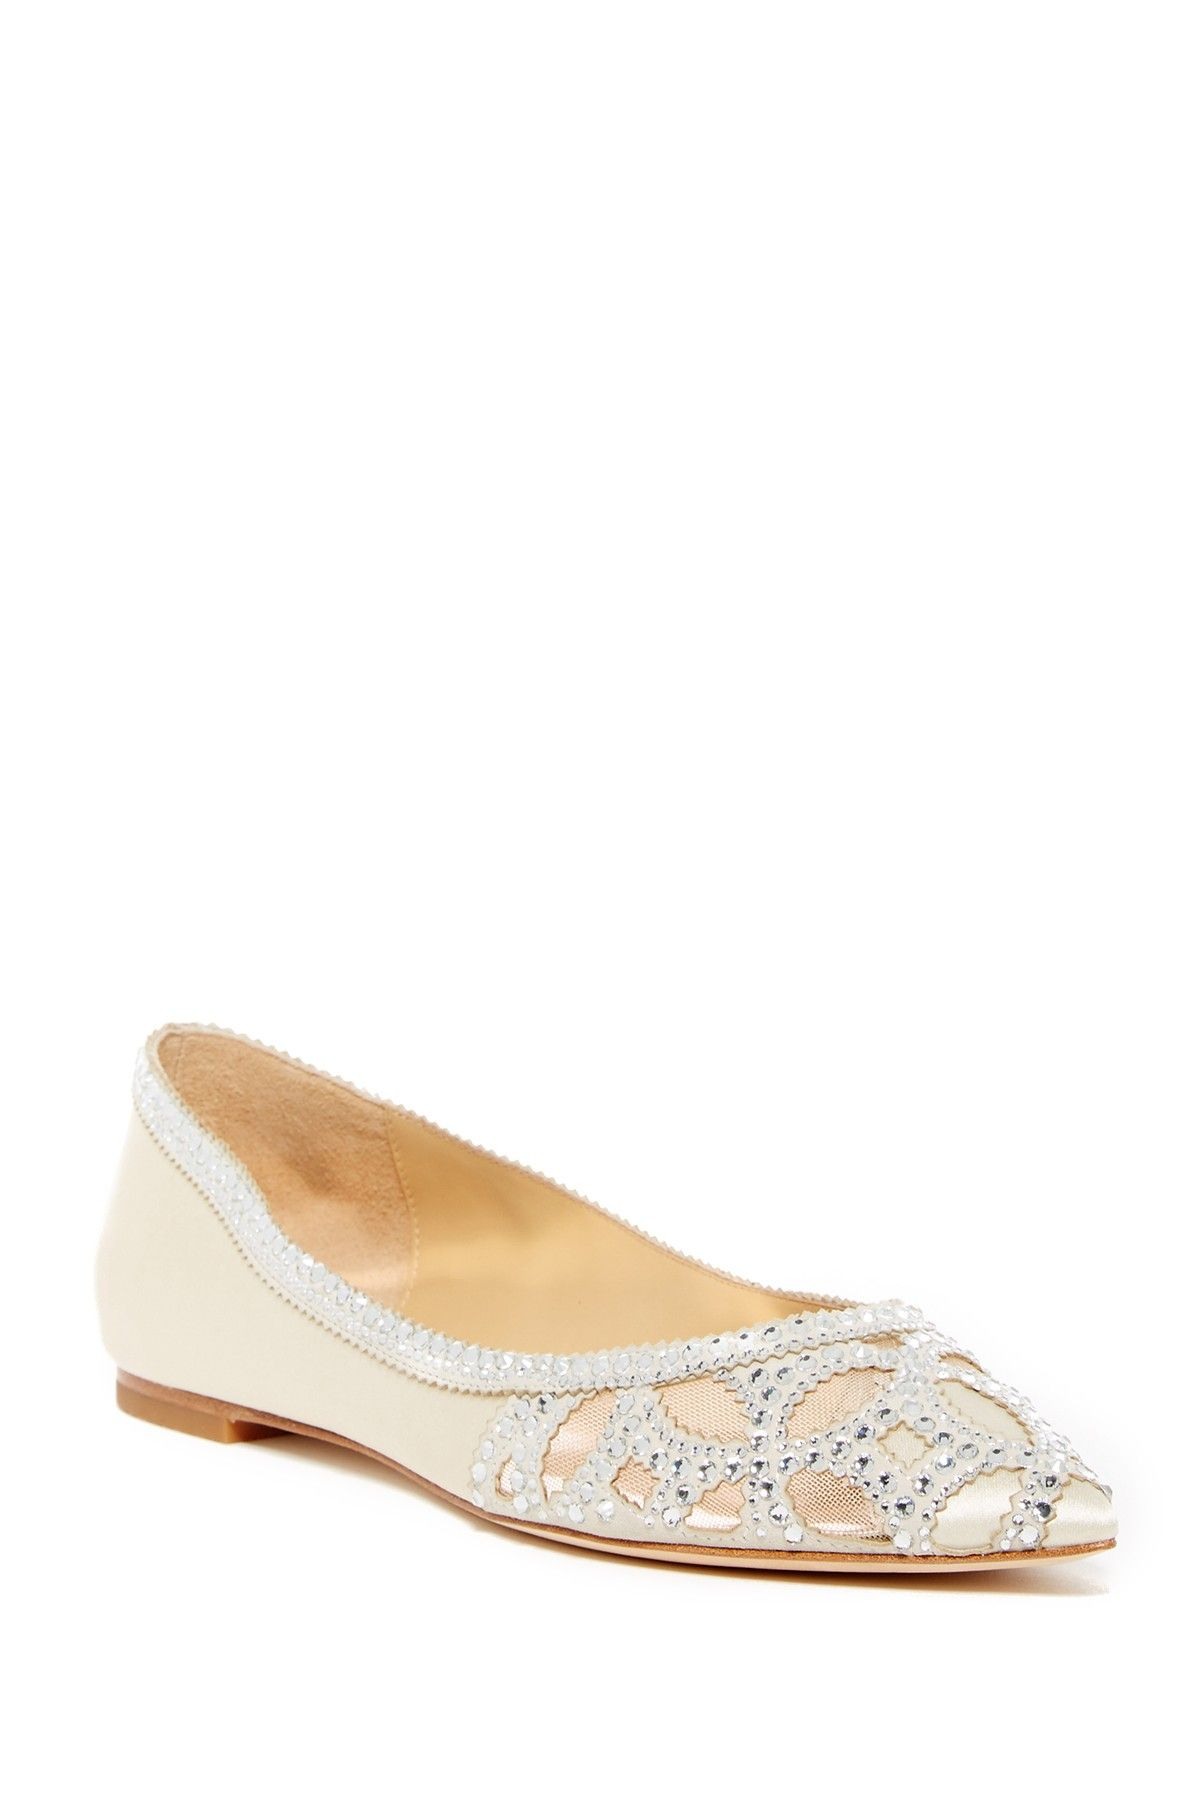 3b4e2b731cd61 Sunny Embellished Satin Flat | The Look in 2019 | Flats, Badgley ...